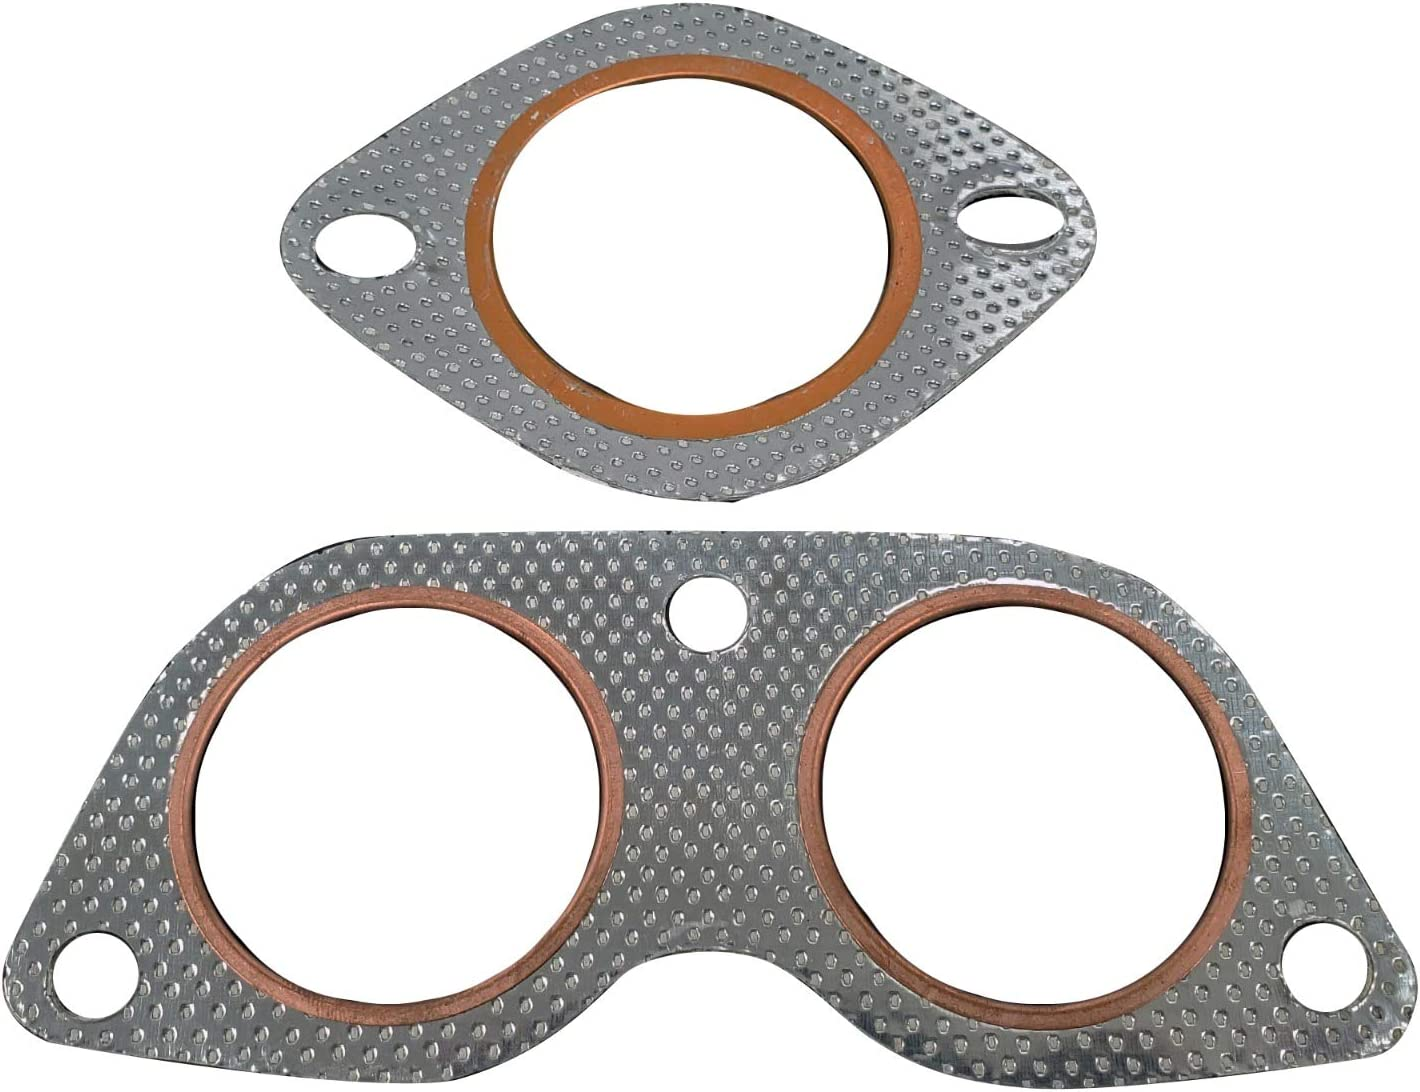 ALUMINUM METAL GASKET PACK FOR LEXUS IS300 ALTEZZA Y-PIPE DOWNPIPE